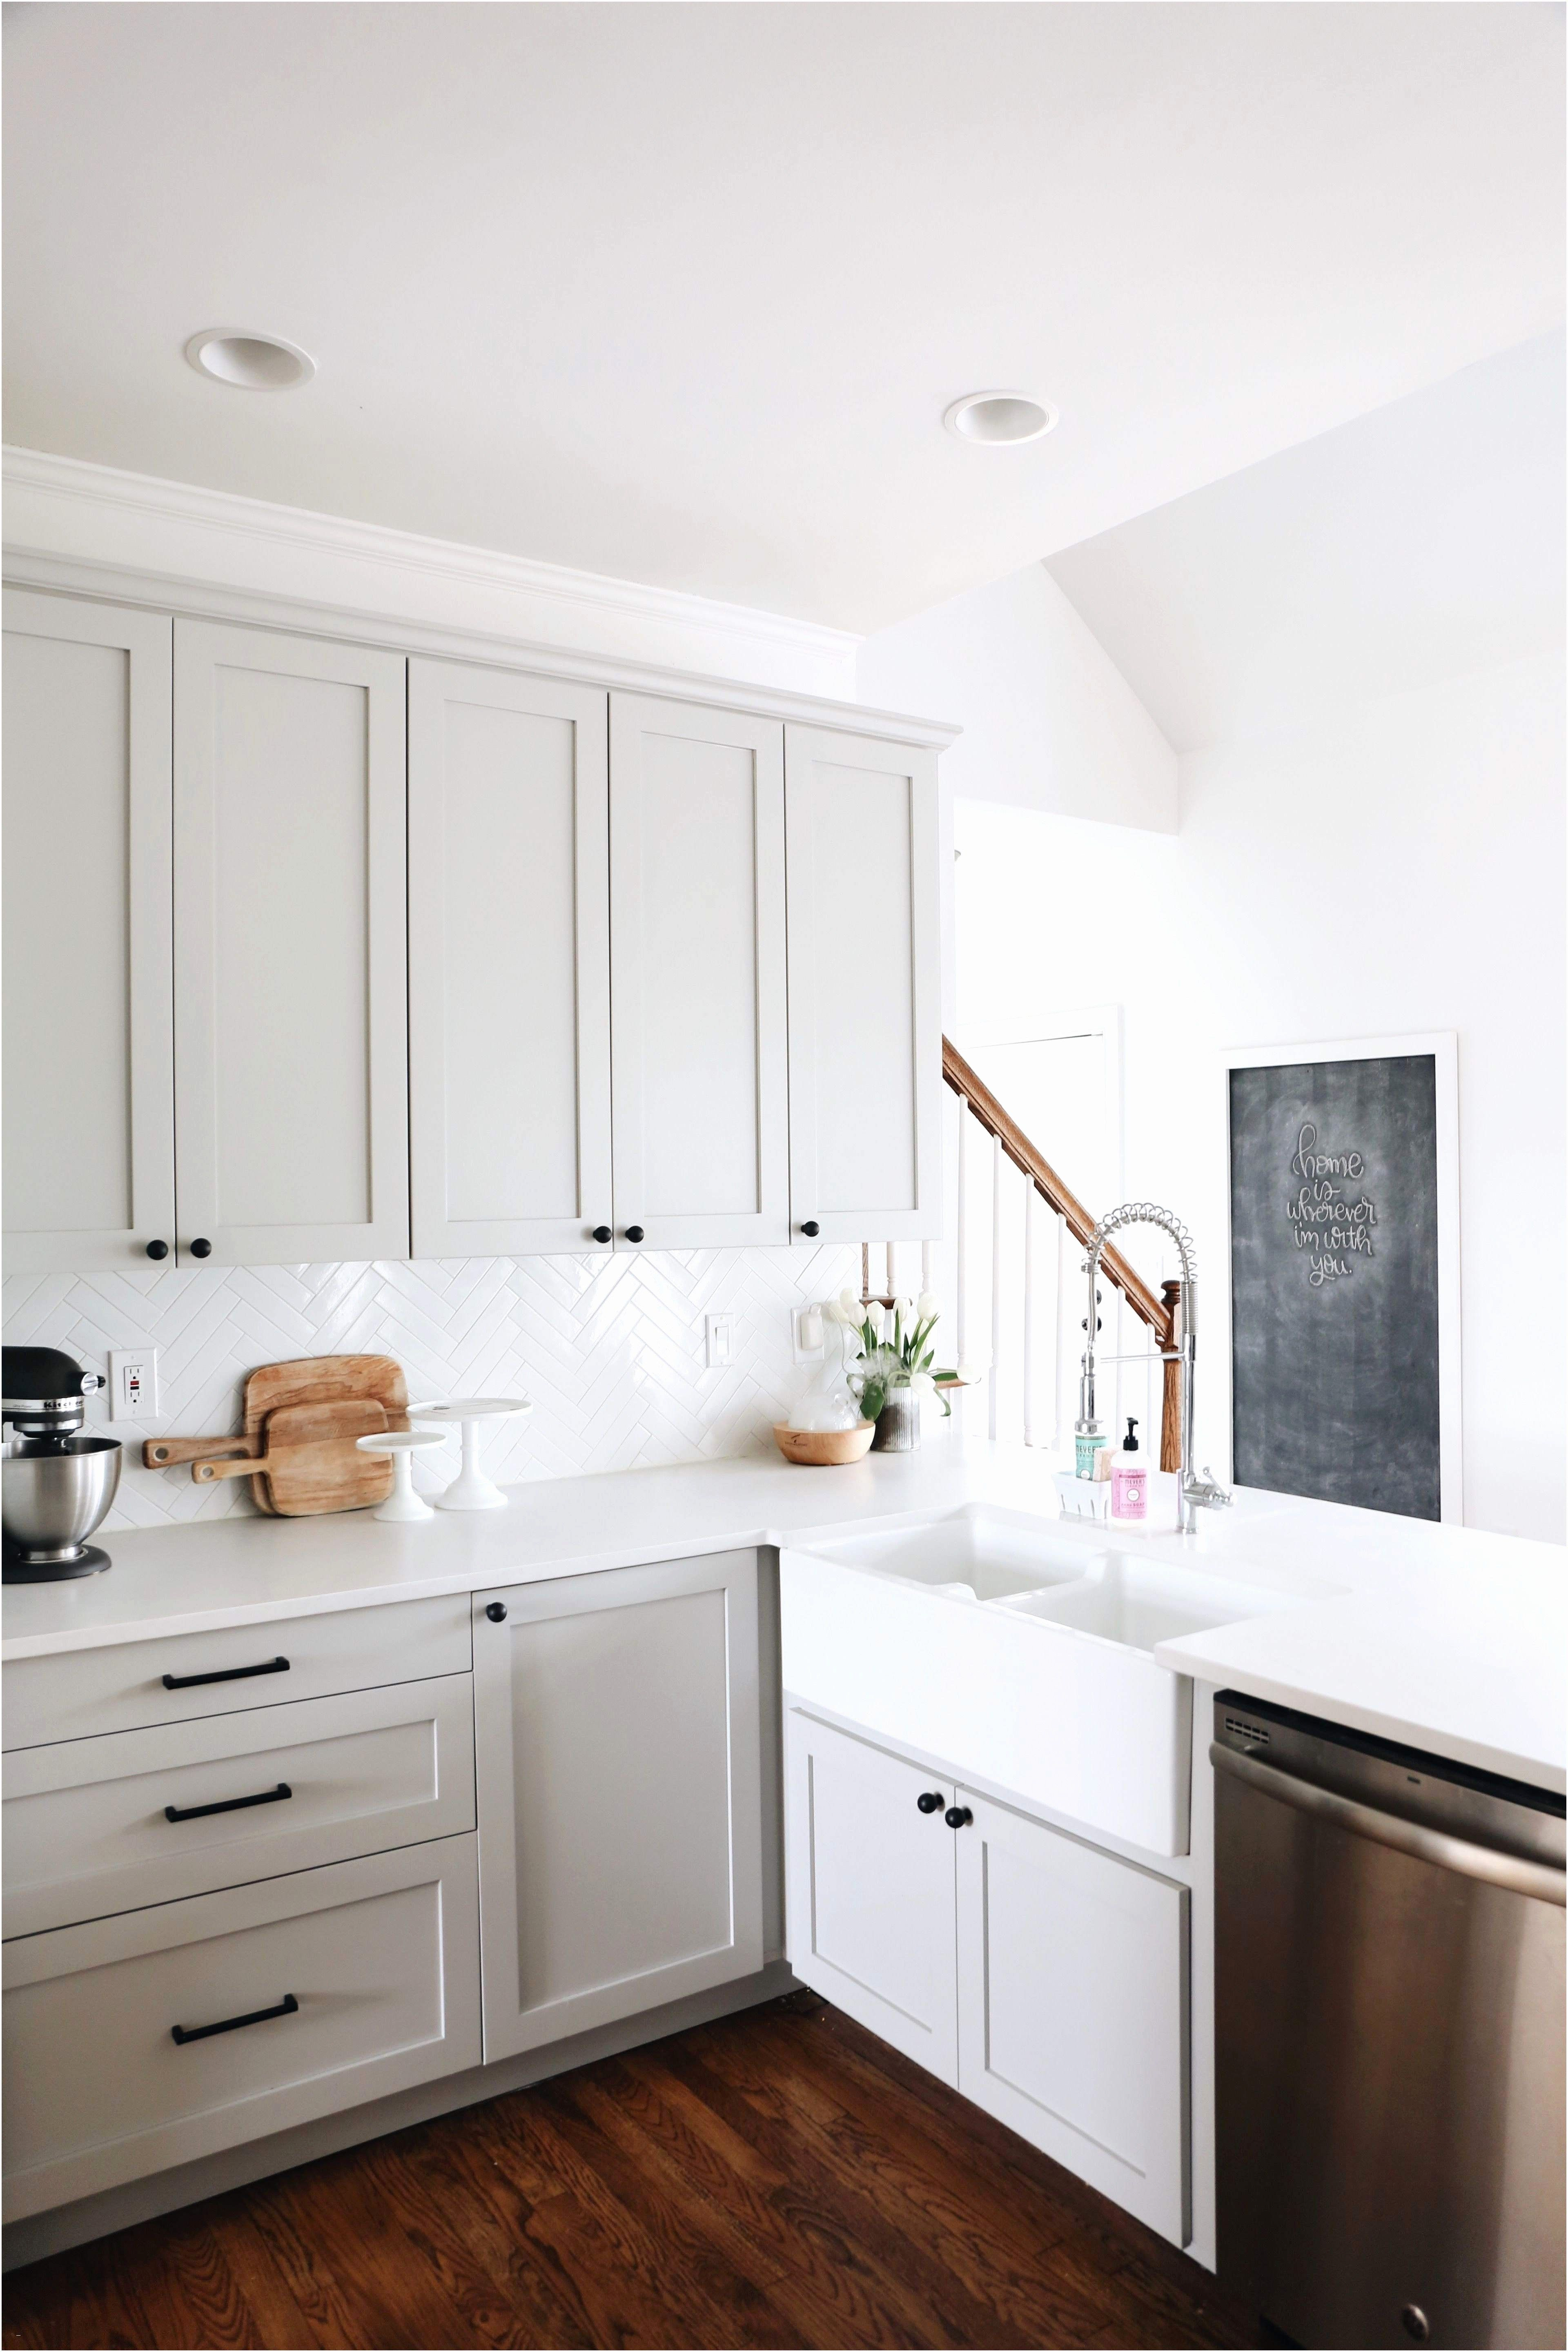 35 Brilliant How Much Does It Cost To Remodel A Kitchen Best Kitchen Cabinets Kitchen Renovation Kitchen Design